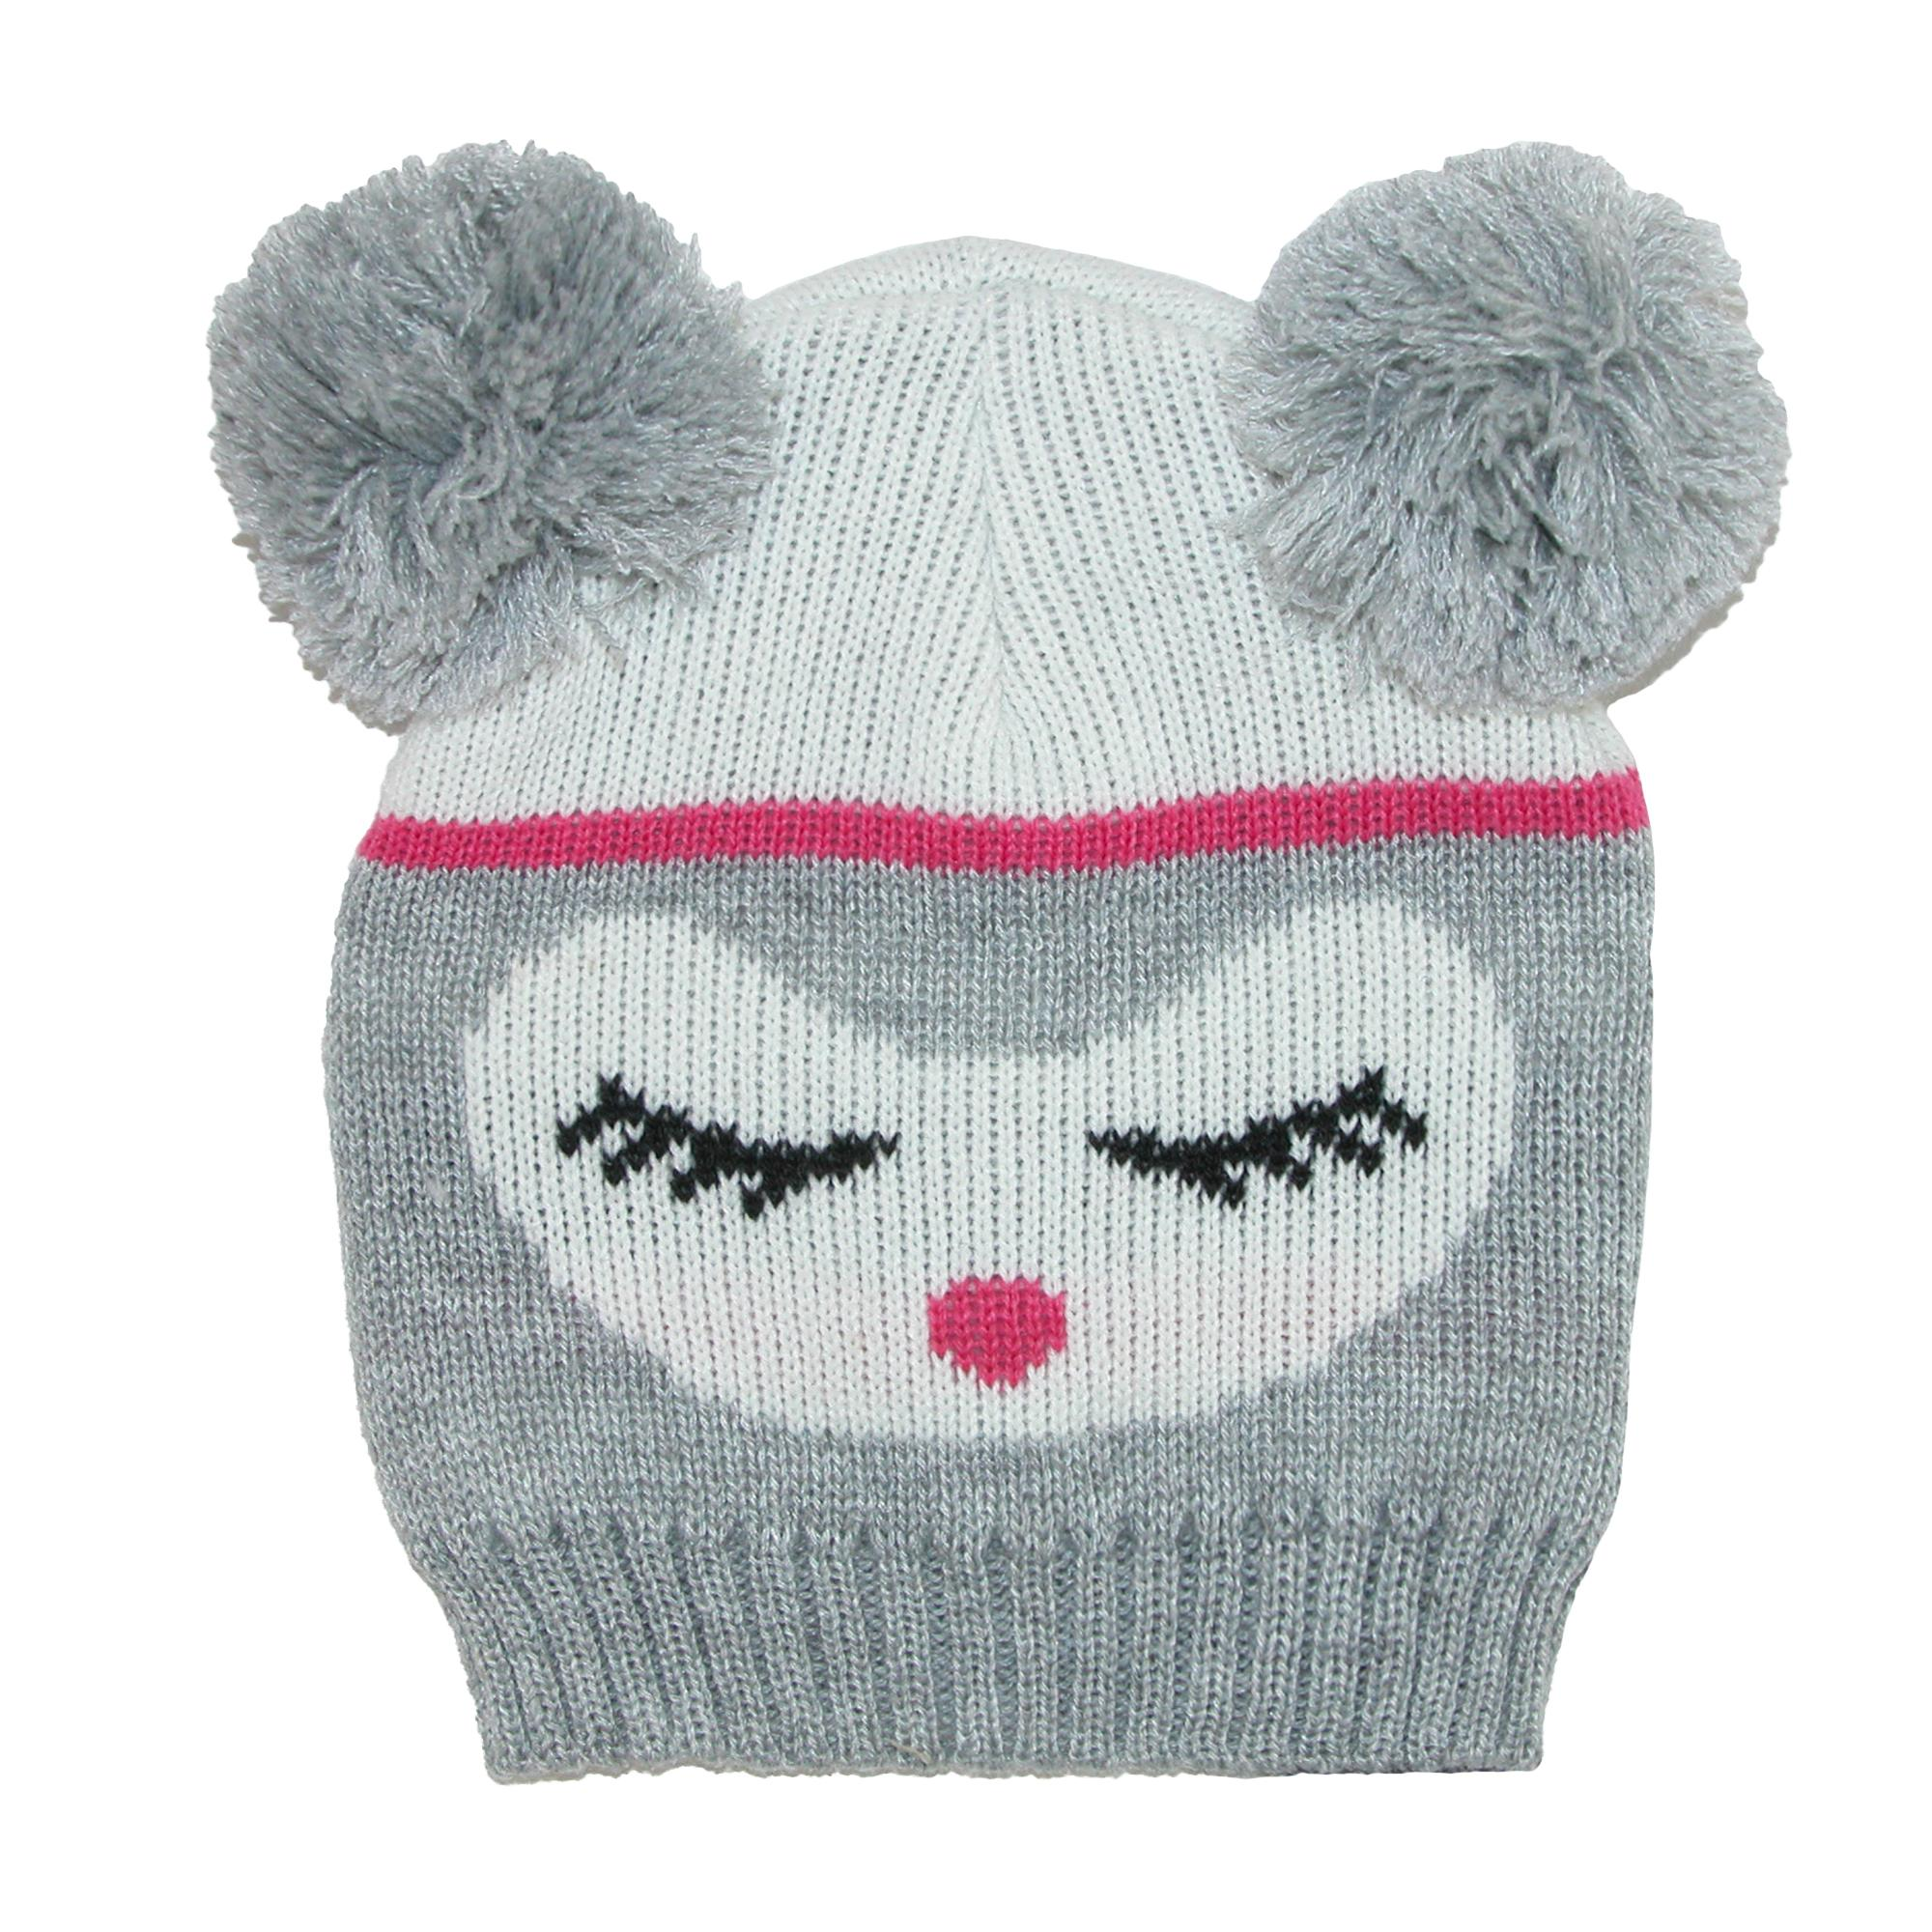 CTM Kids' Knit Animal Face Hat with